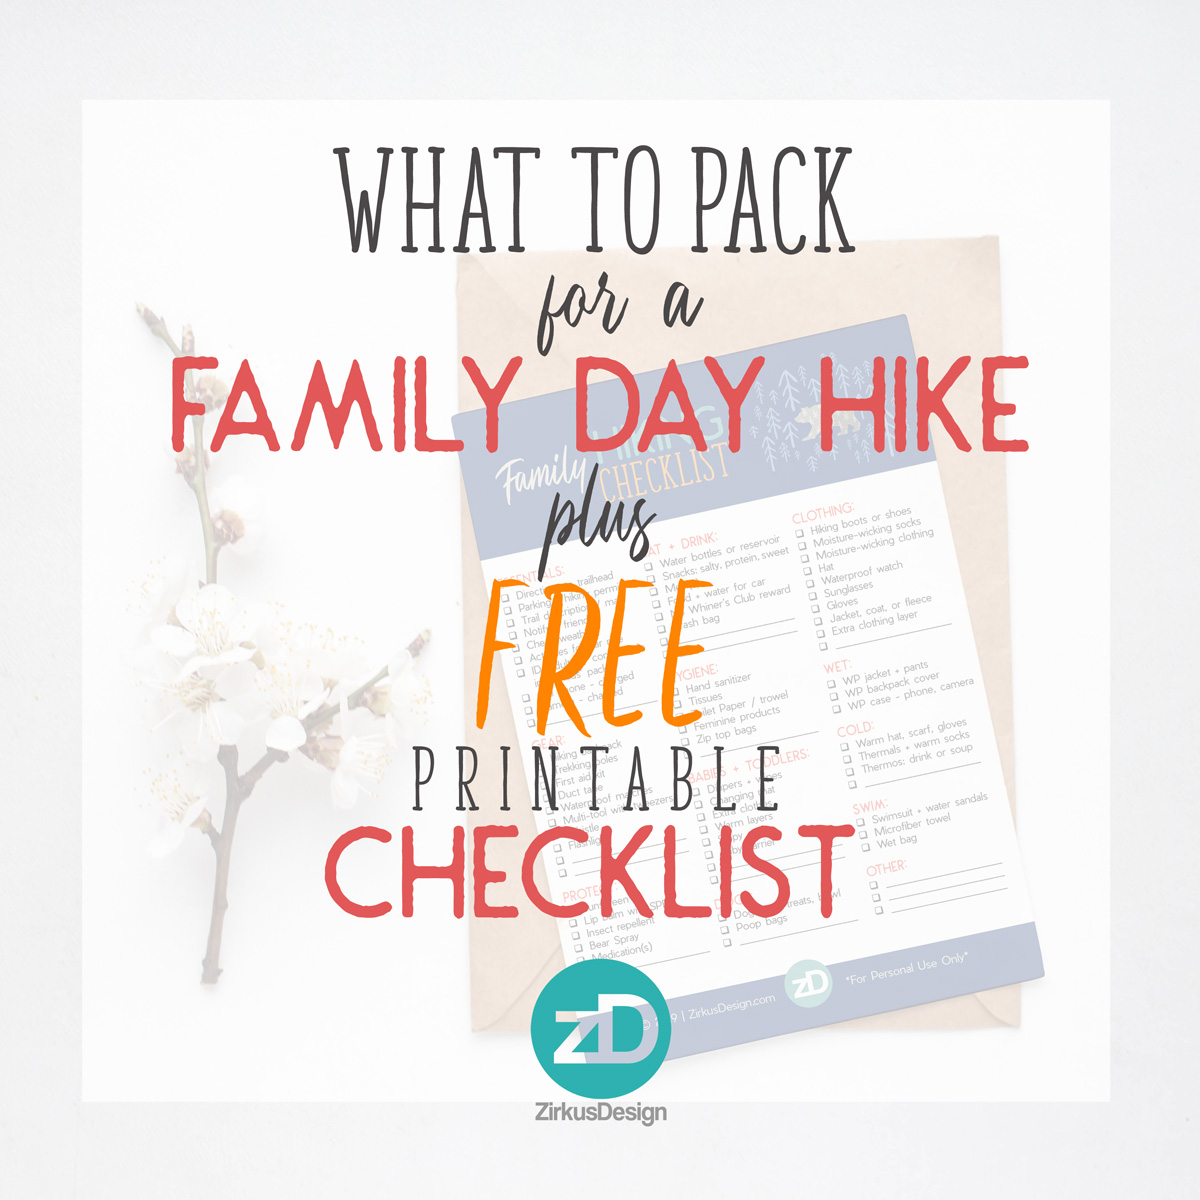 What to Pack for a Family Day Hike - FREE Printable Checklist!